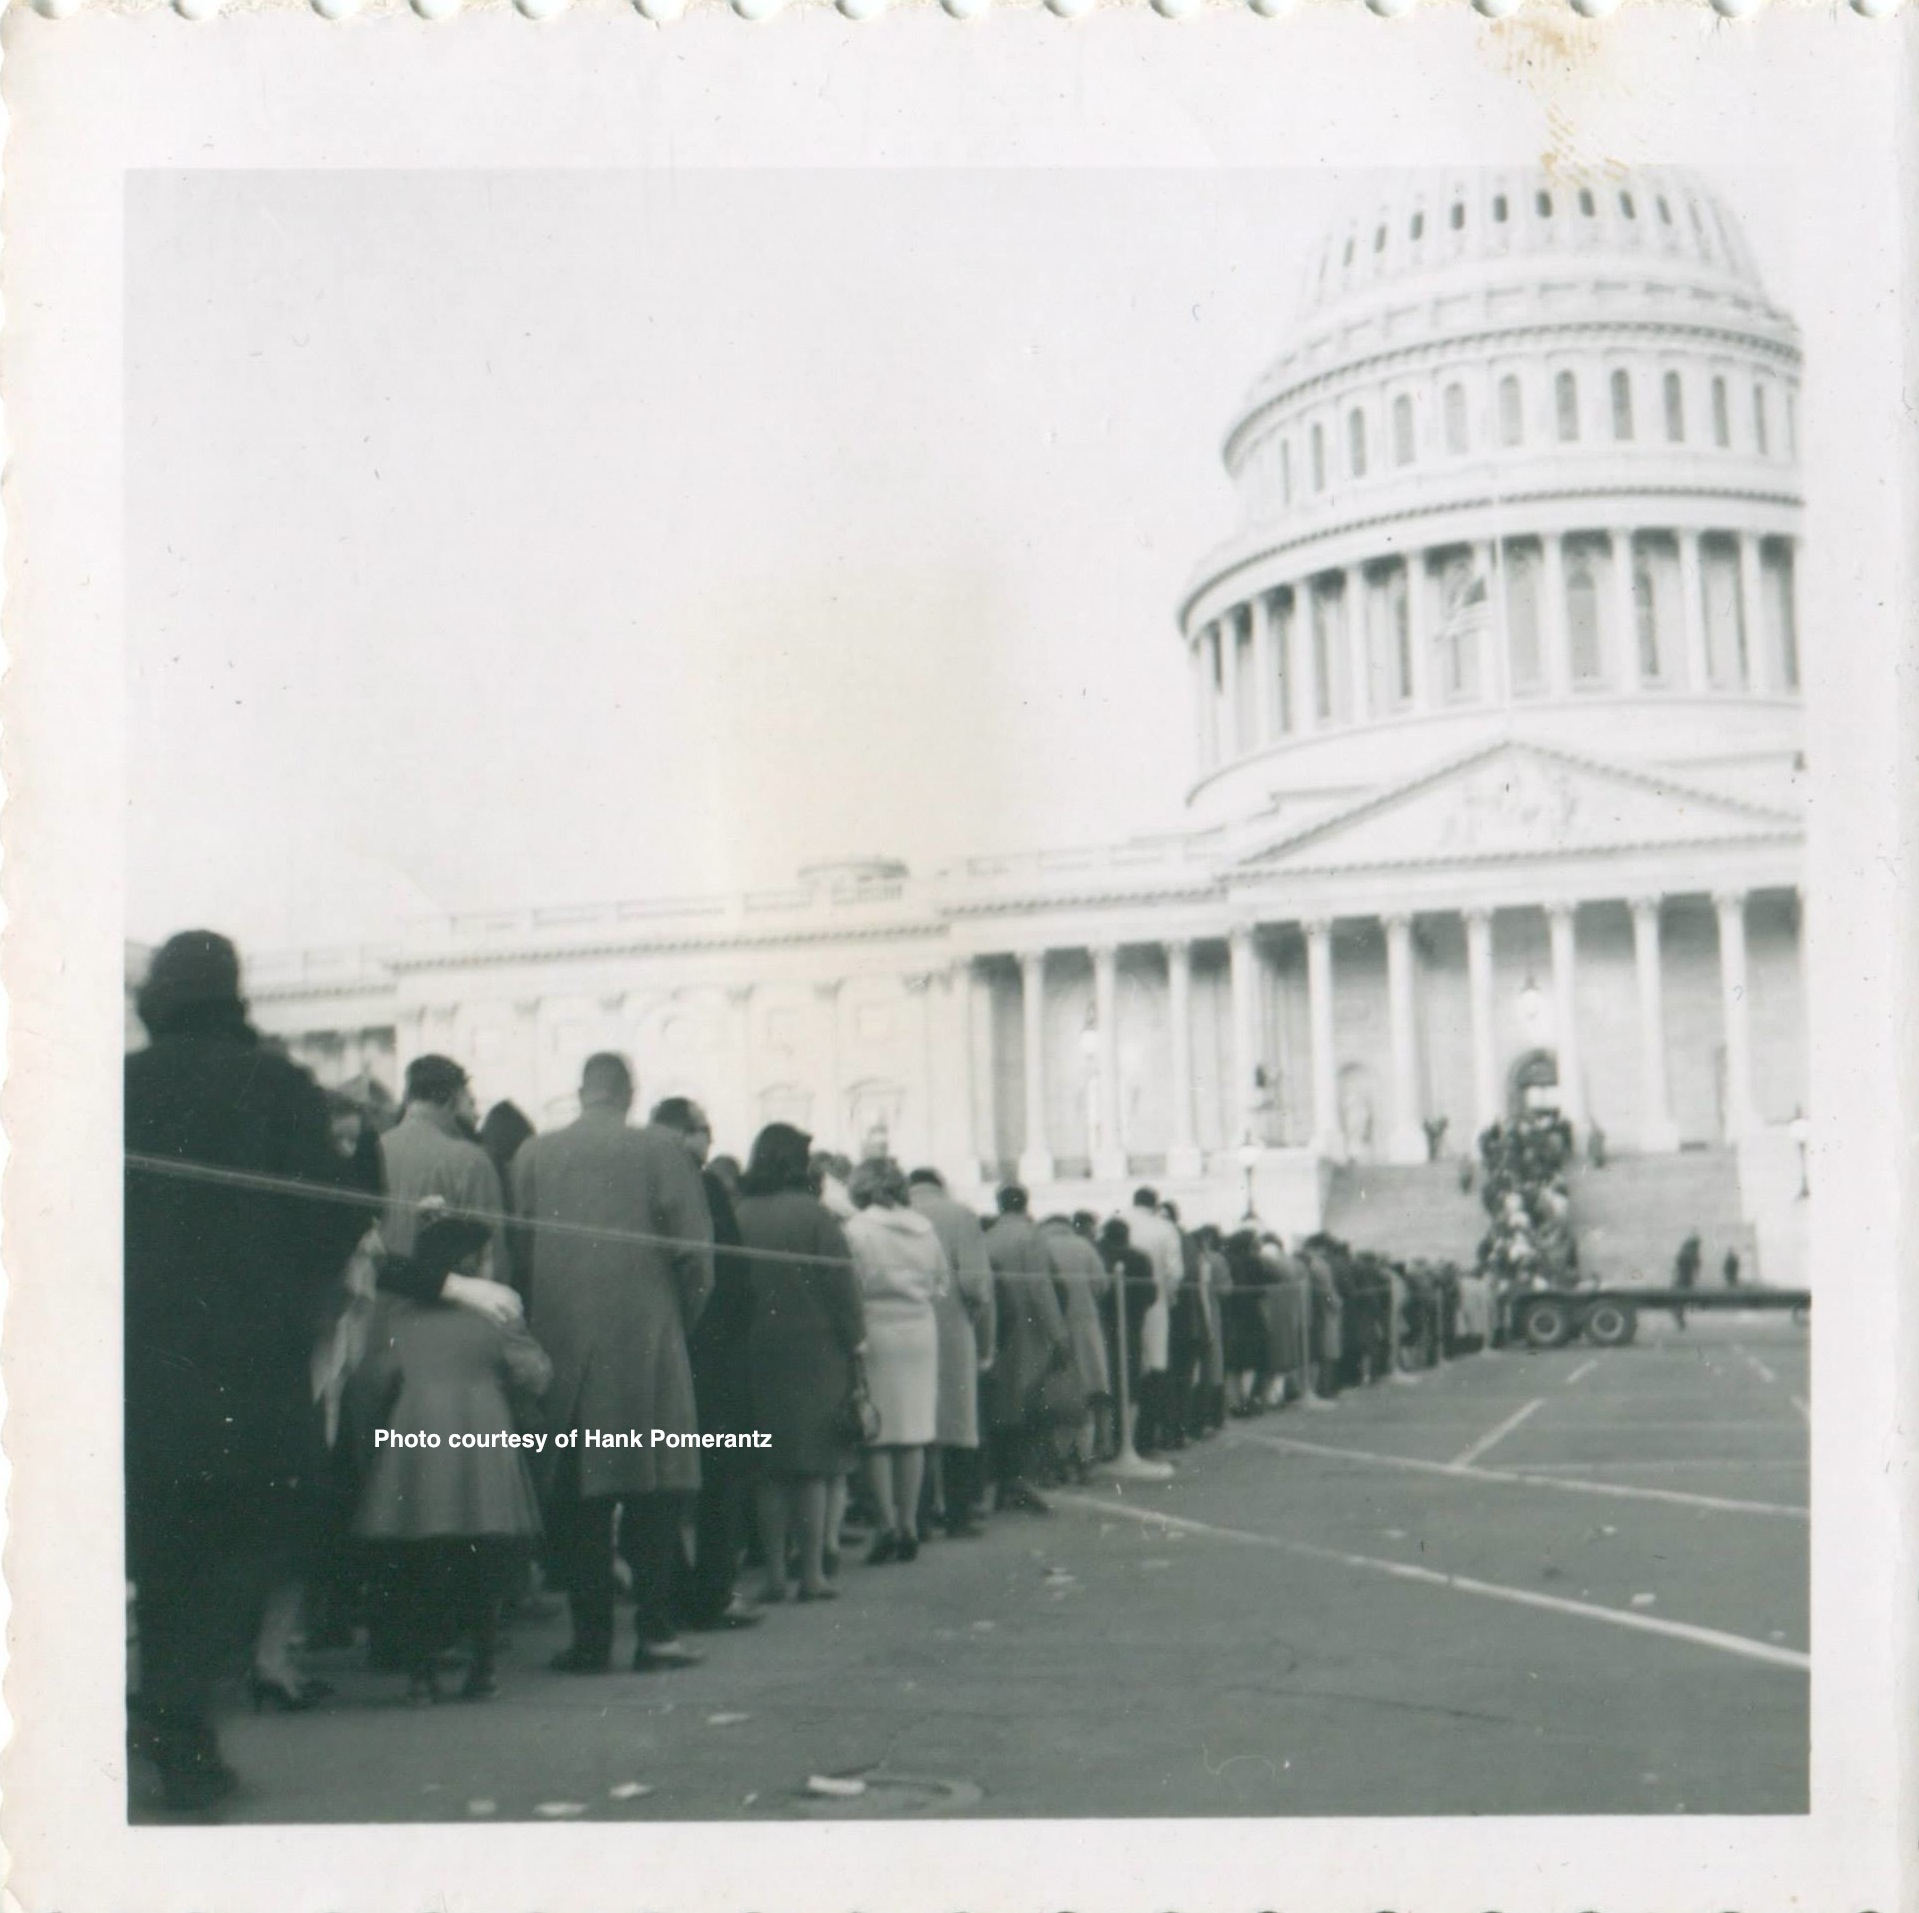 The line stretching outside to view JFK's casket. Photo by and courtesy of Hank Pomerantz.